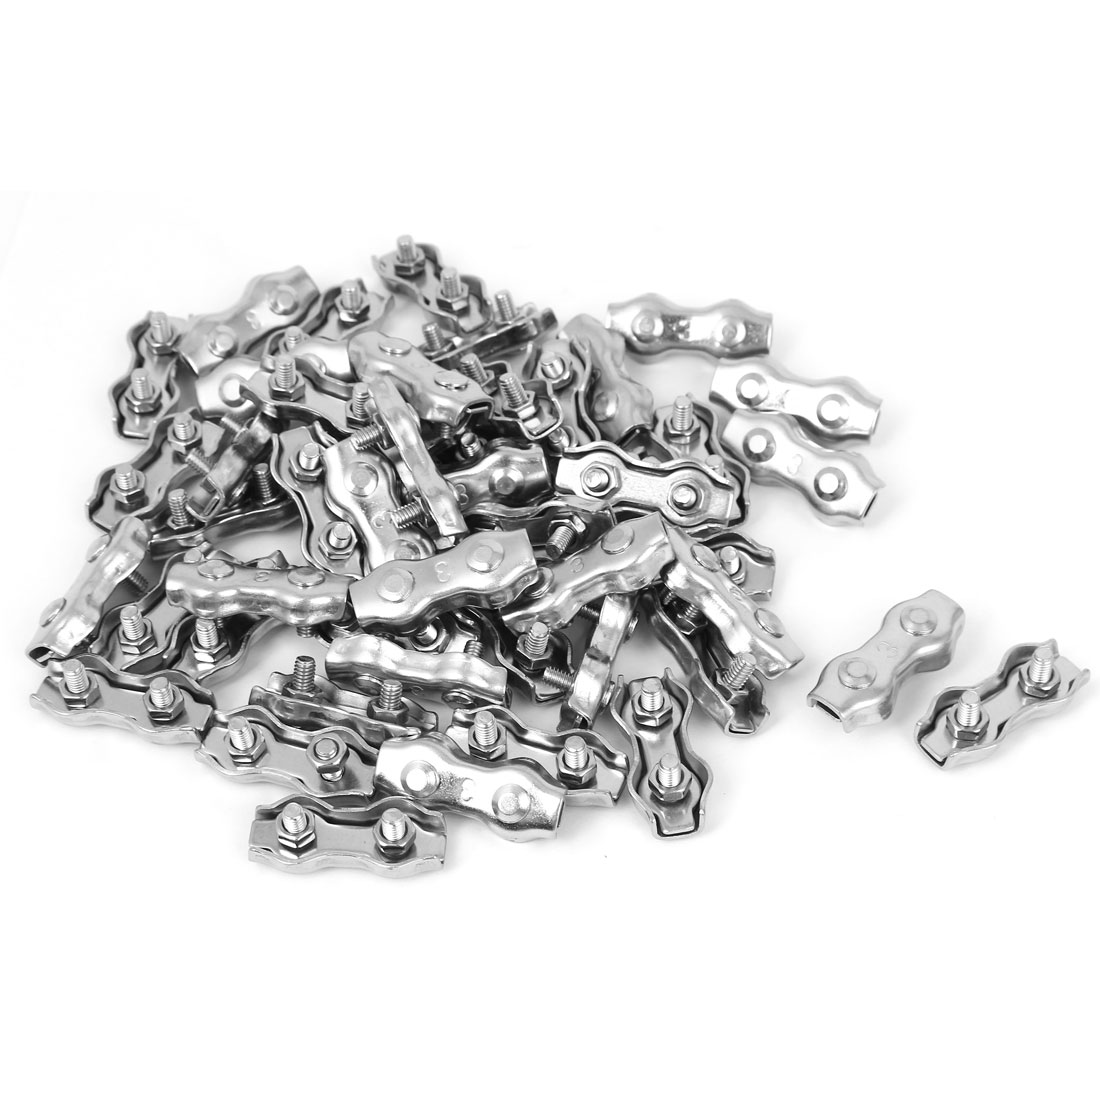 Stainless Steel Duplex 2-Post Clip Cable Clamp 50 Pcs for 3mm Wire Rope